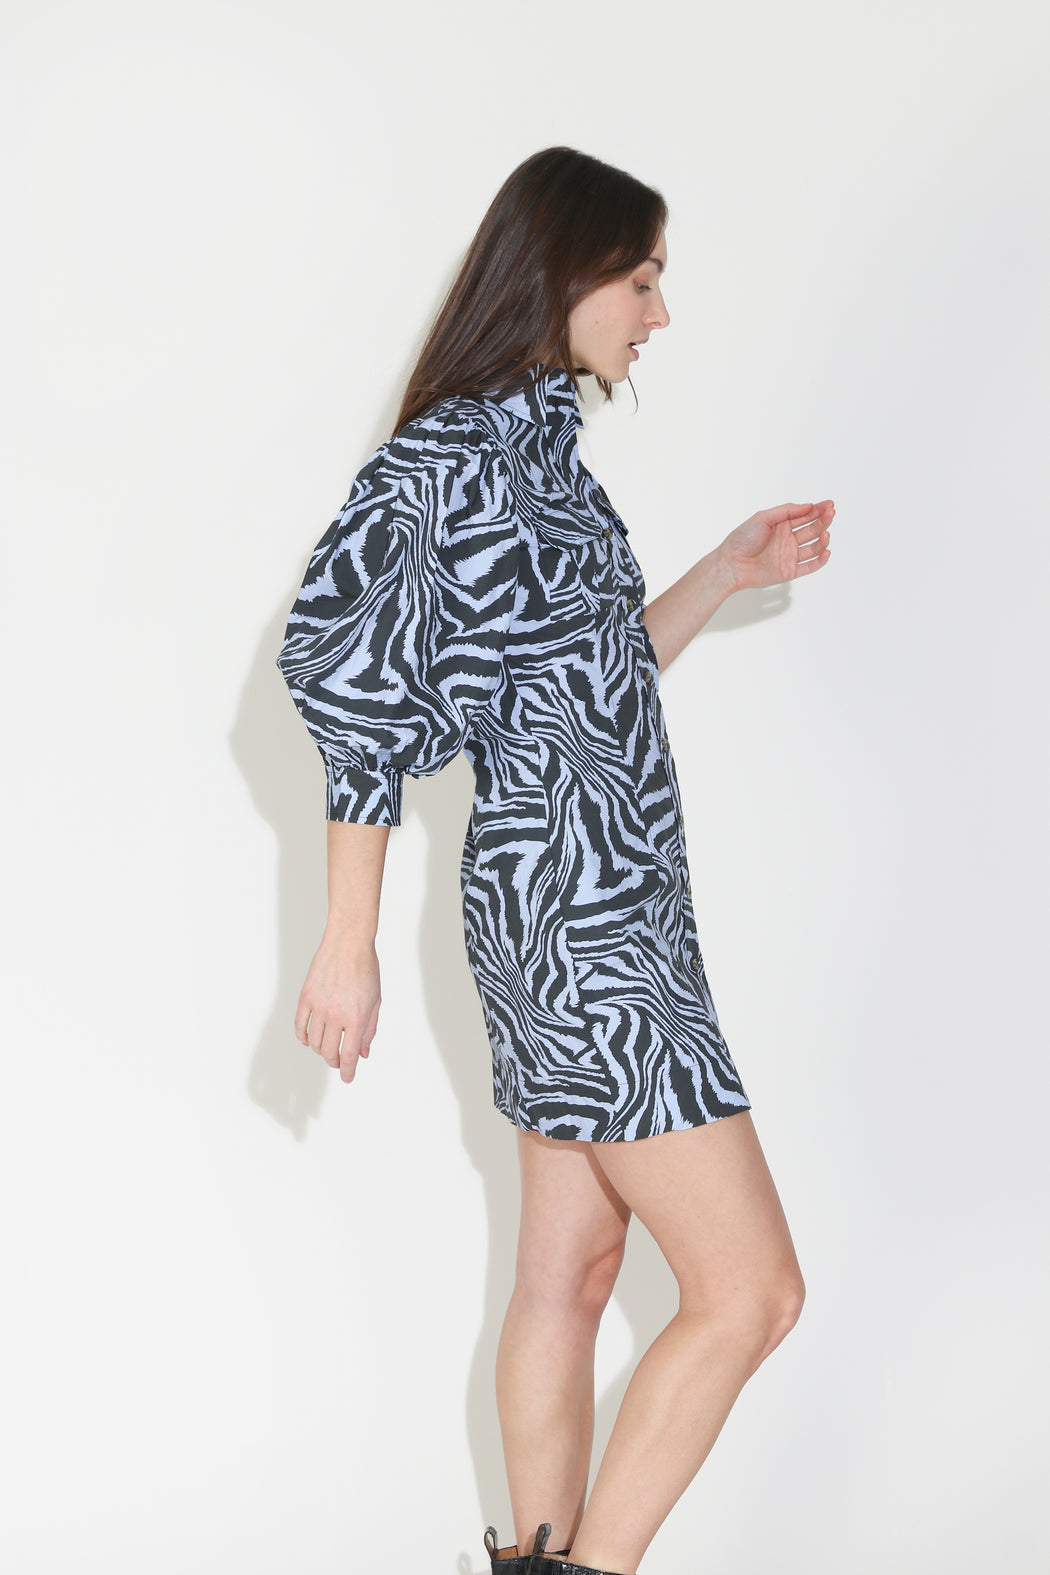 Ganni Printed Cotton Poplin Dress in Forever Blue